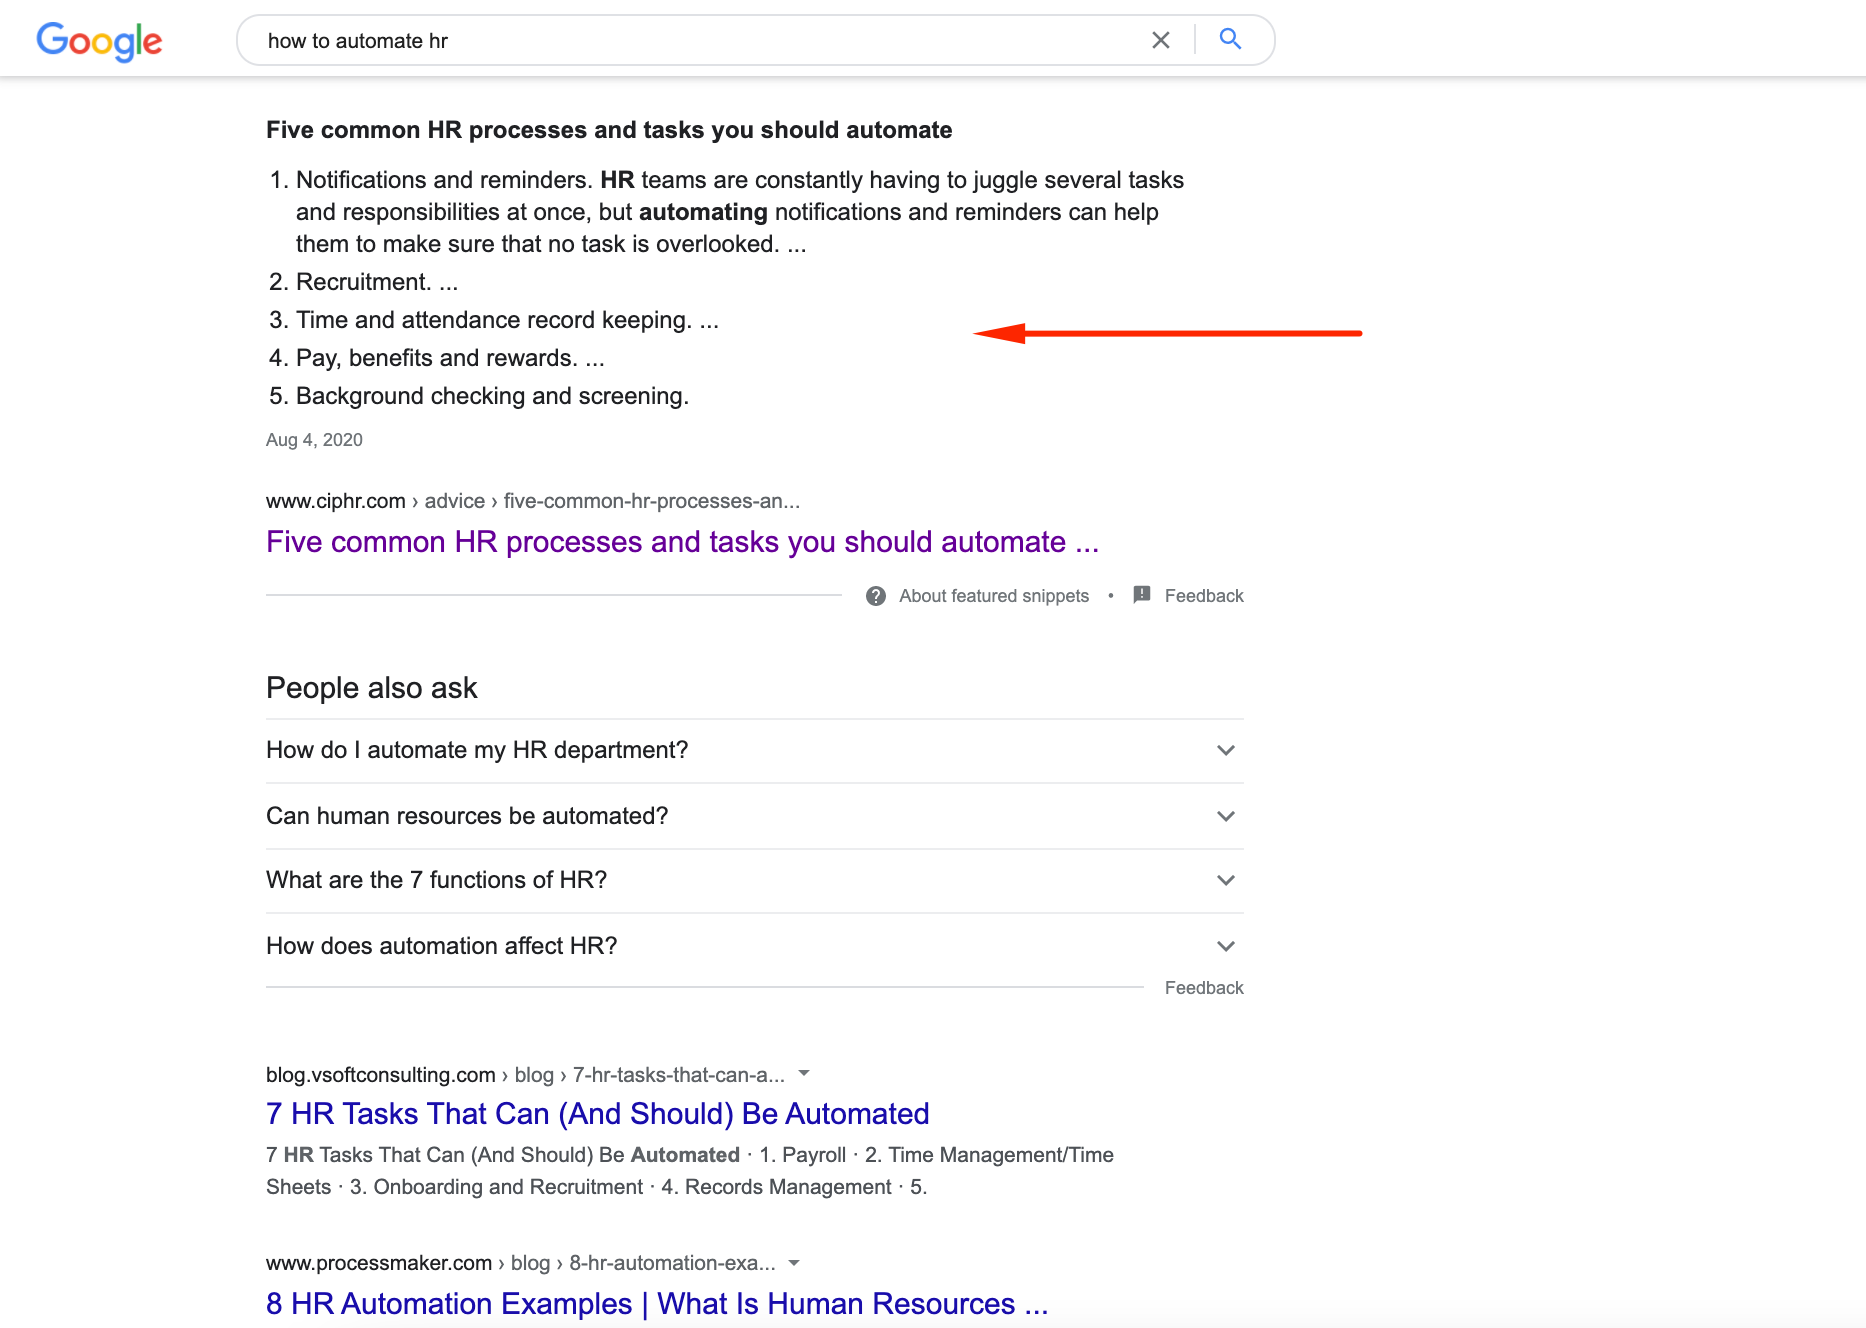 """8. Optimizing content for rich snippet Getting to the rich snippet can increase your СTR by 677% and drive much more traffic to your site. As a rule, content that fits search intent the most is more likely to be featured in rich snippets, and that's good news for SaaS companies. They could target most schema types such as review, how-to, product, video, and FAQ snippets.  For example, let's suppose that your """"how-to"""" articles match the informational intents of visitors. In that case, your site may get more clicks, longer sessions, and higher conversions (since SaaS companies can easily convert readers of their blog to explaining widespread problems and offering solutions in the articles).   Anyway, it's always better to be featured in the rich snippet. To get there, it's advised to: Use keywords with rich snippets opportunities – usually, these are long-tail keywords containing words like """"how-to,"""" """"what is,"""" etc.; Use structured data markups; Add lists and videos to your content page; Make short paragraphs with subheadings that answer specific questions."""